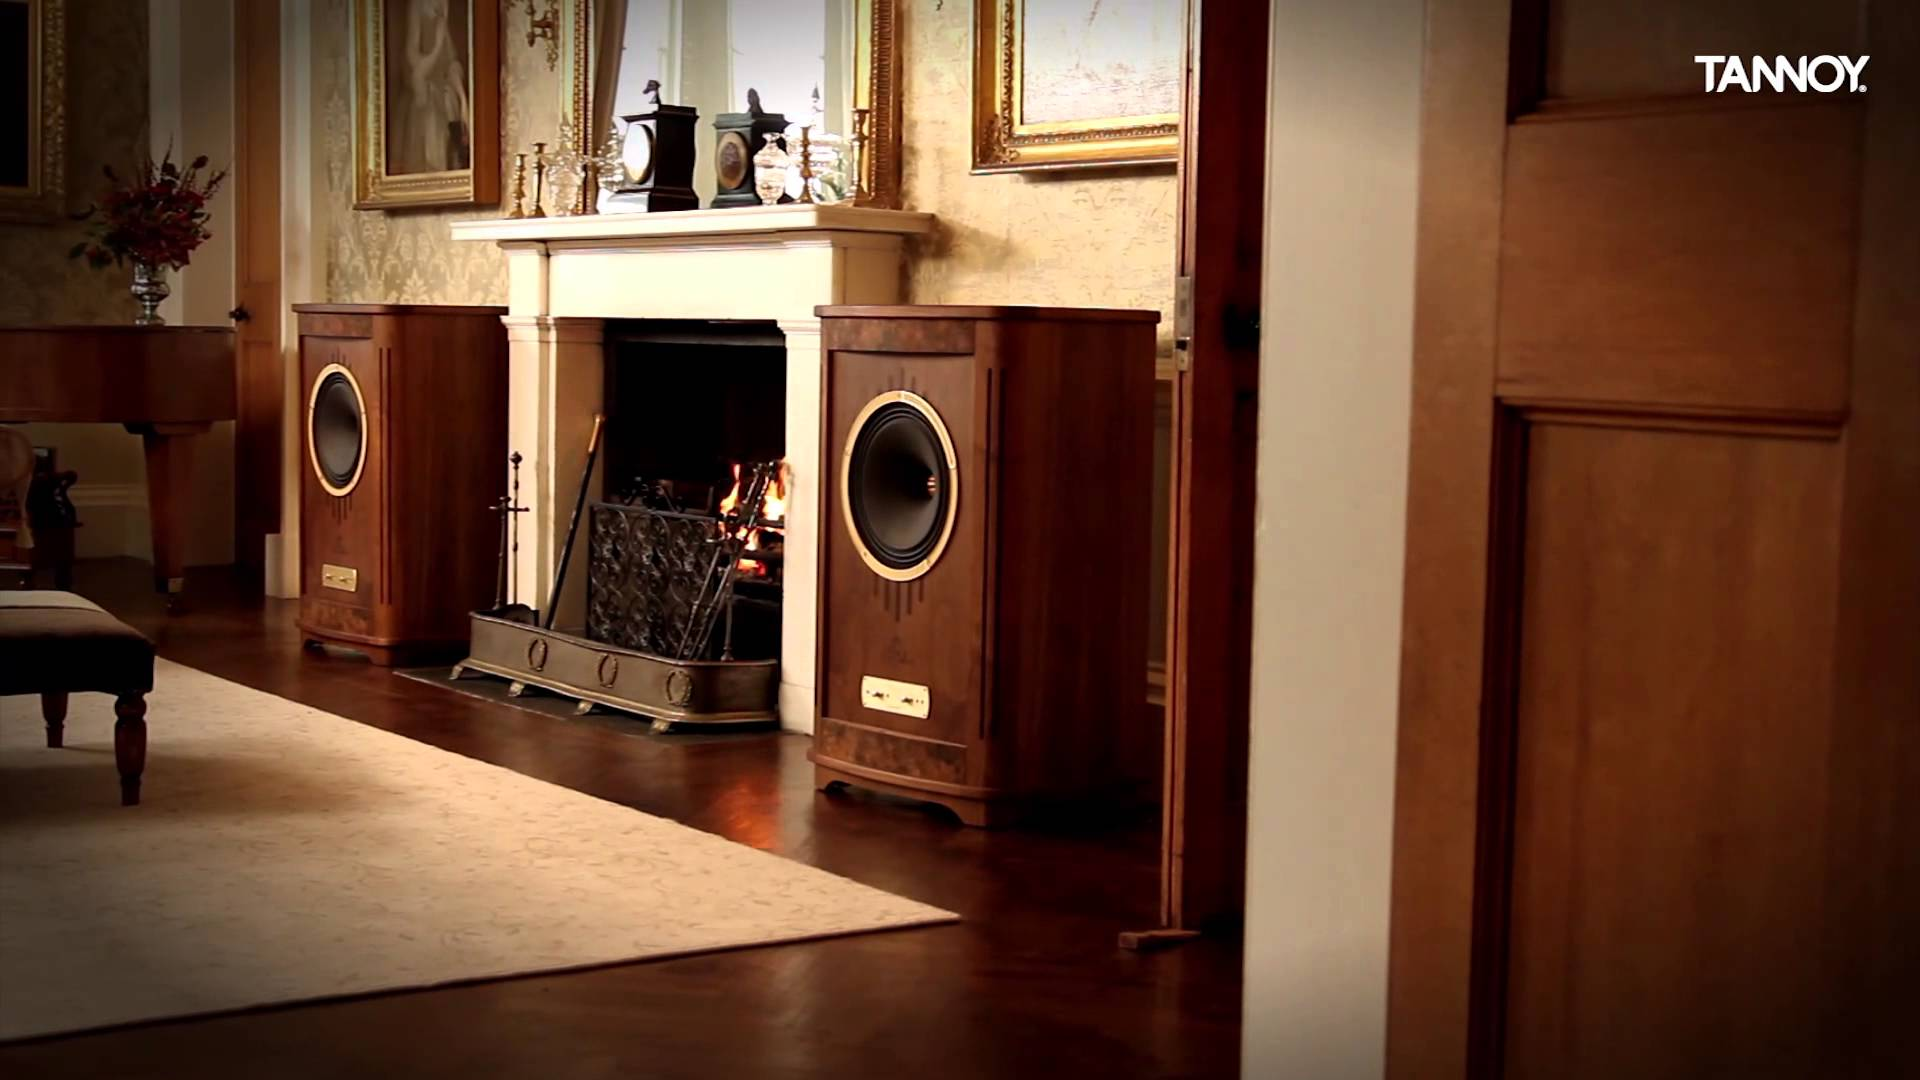 dong-loa-tannoy-prestige-02